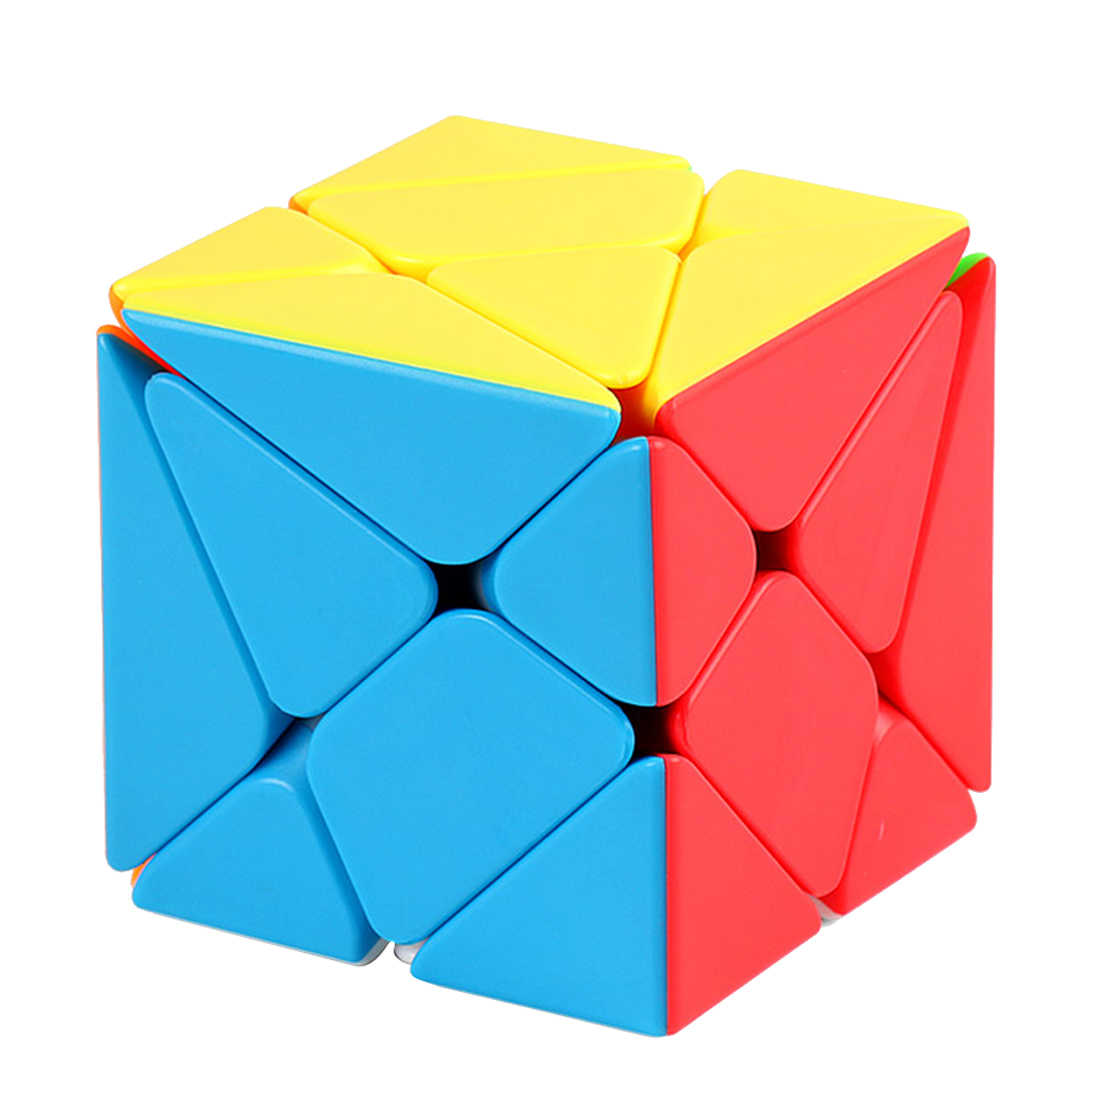 MF8848 Mofang Jiaoshi Fluctuate Type 3x3x3 Skew Magic Cube Educational Toys for Brain Trainning - Colorful